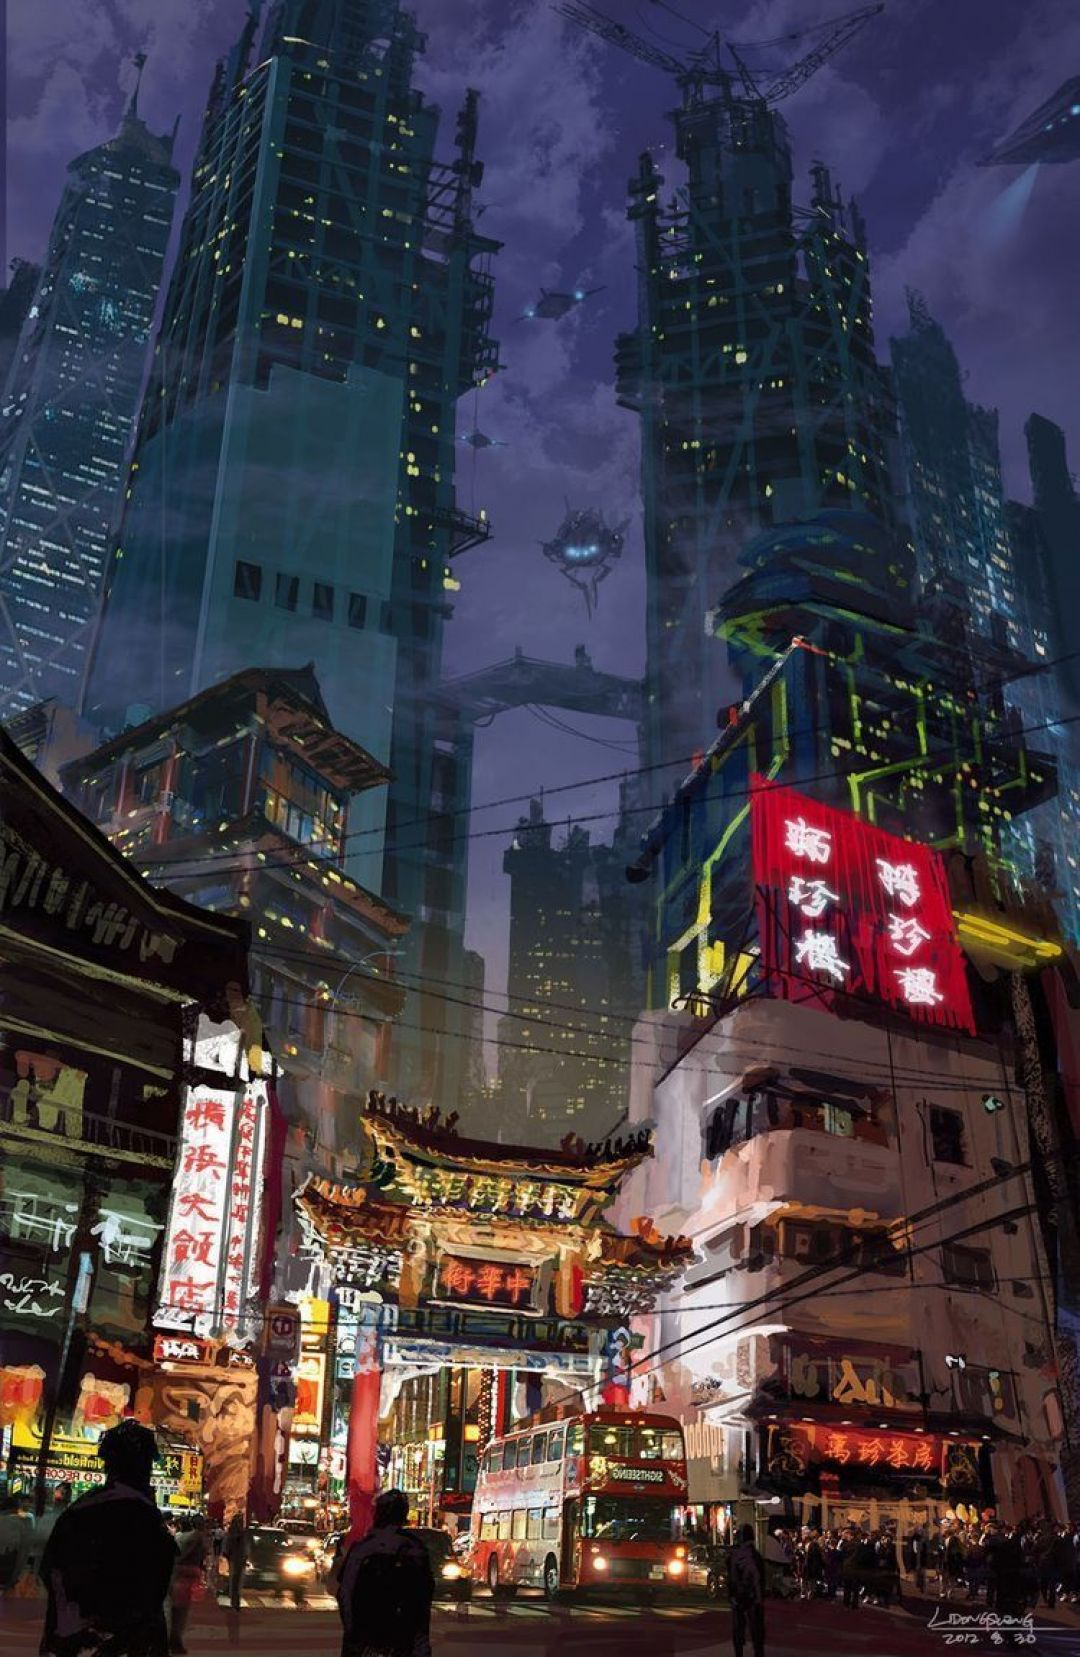 Japanese Anime City Cyberpunk Anime Wallpaper Phone 1080x1657 Wallpaper Teahub Io